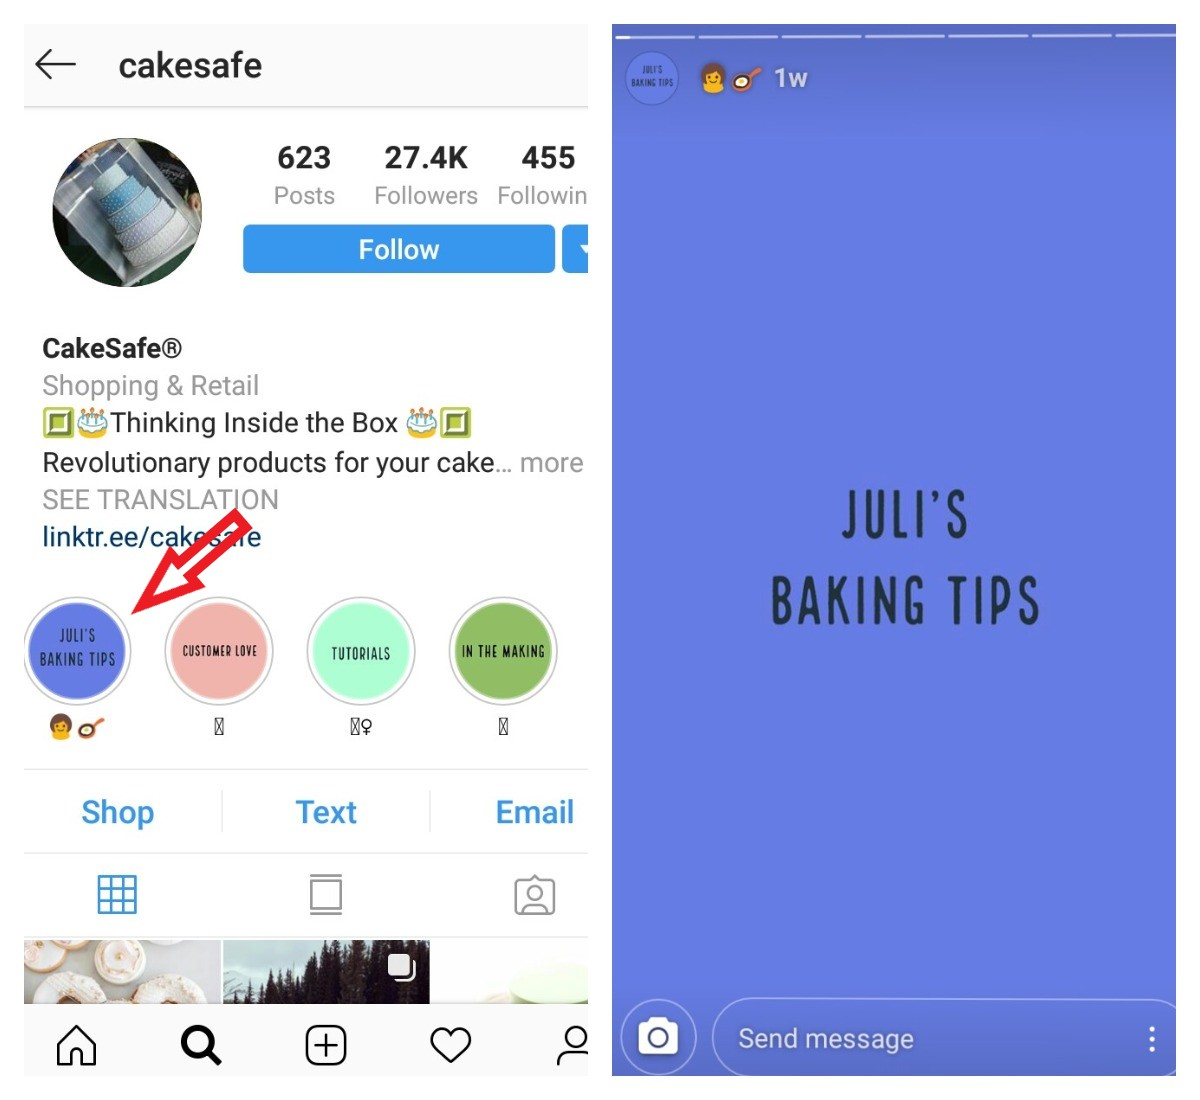 highlights for business profile on instagram